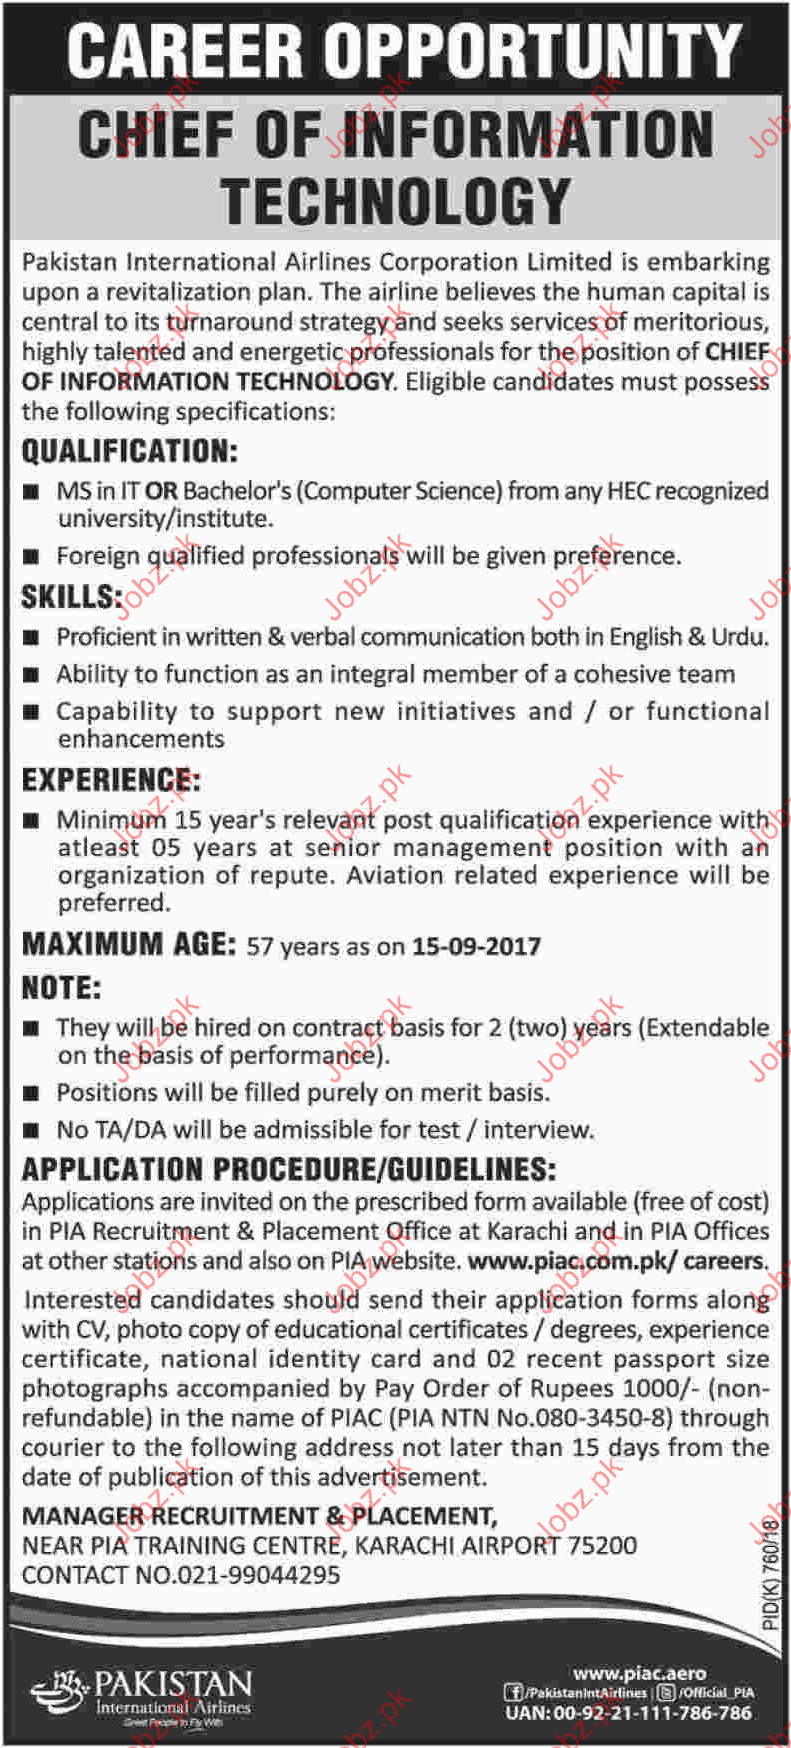 Pakistan International Airlines Corporation Recruitment 2017